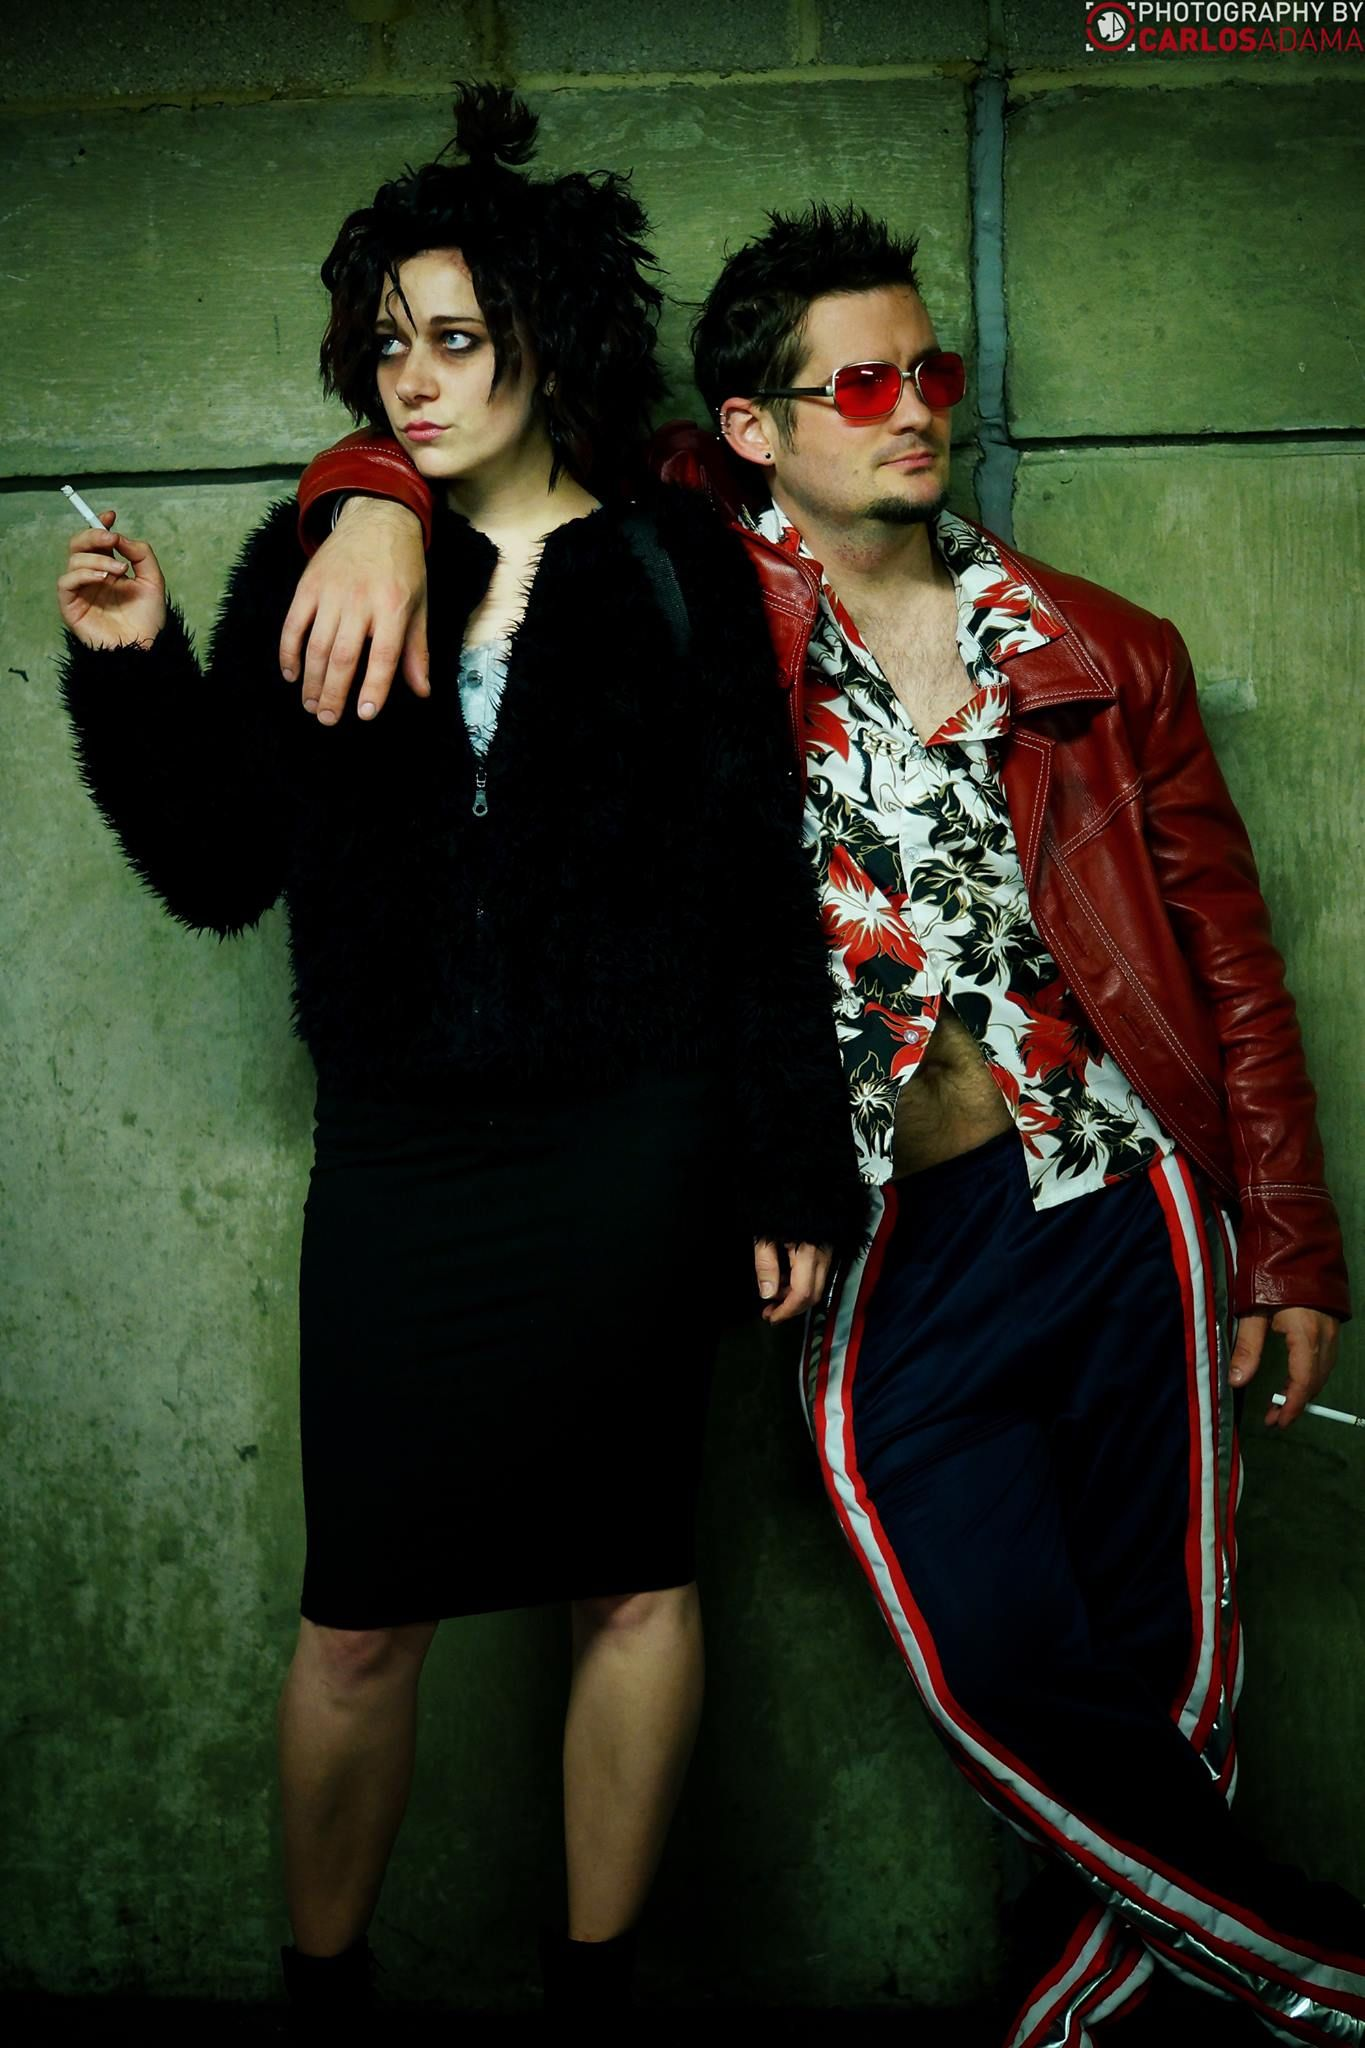 Self Marla Singer And Tyler Durden Fight Club Cosplay Favorites